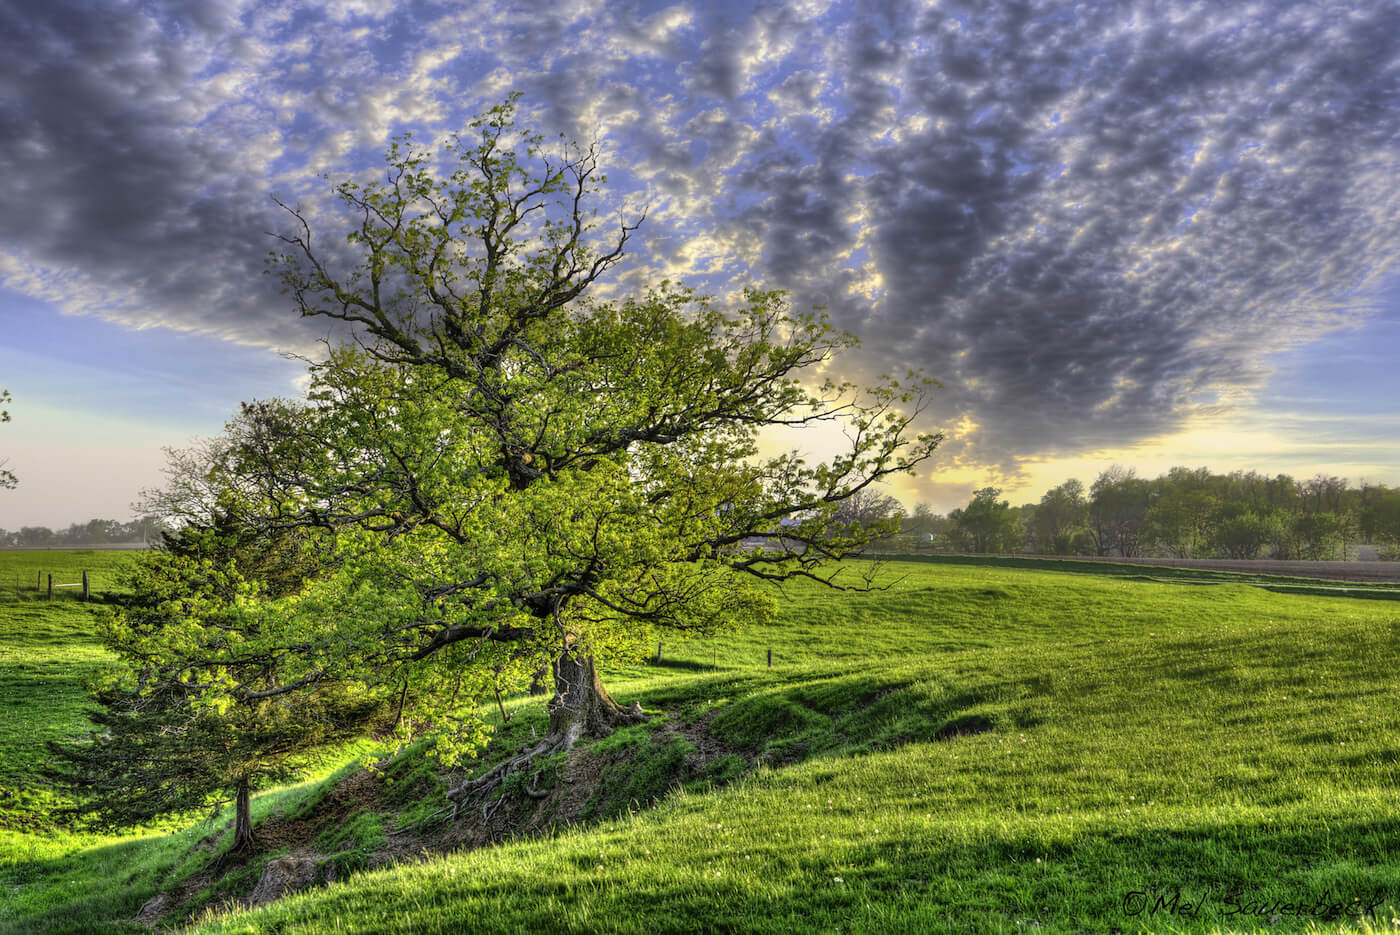 Glowing sunset view with large bent tree in foreground, deep green grass stretching to distant treelike and dramatic blue and grey clouds across the full sky. High dynamic range photo, HDR